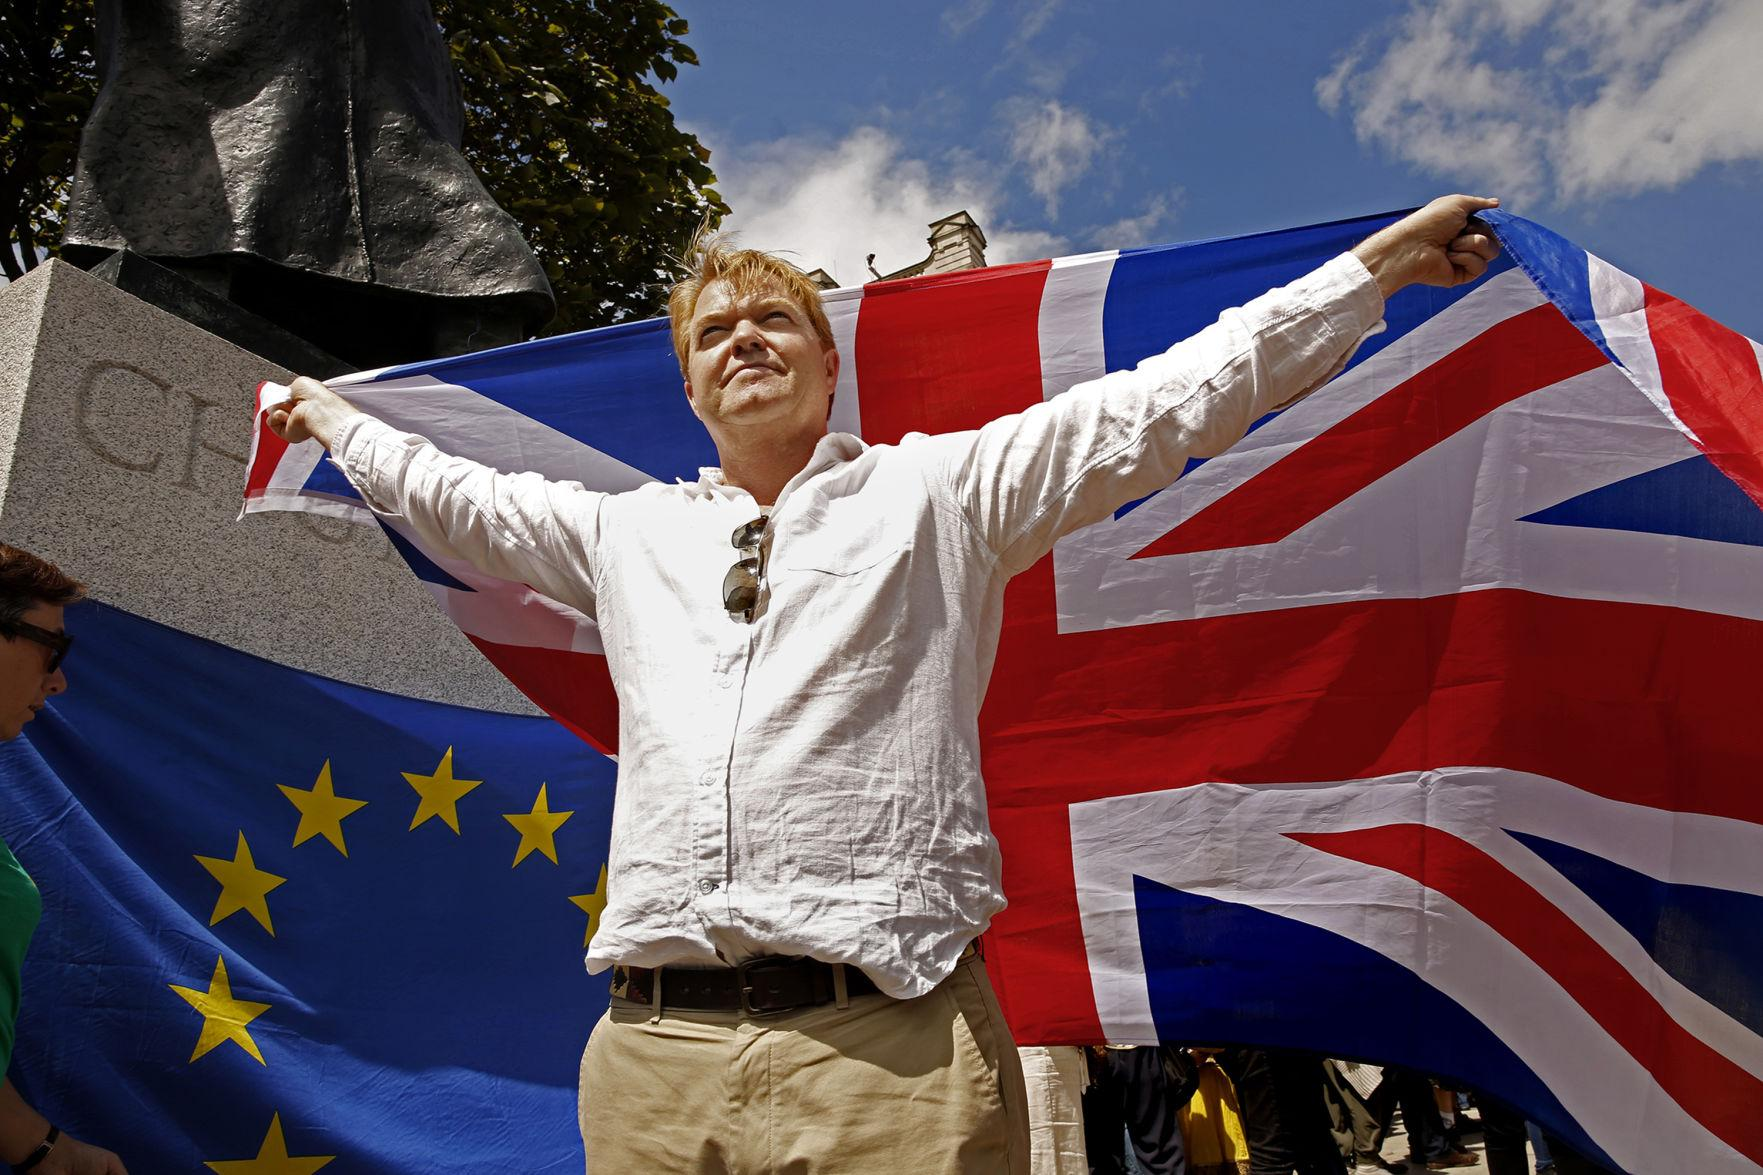 Charles Perry of London joins more than 20,000 people gathering to protest against Great Britain leaving the European Union on Saturday, July 2, 2016, in central London, where marchers made their way to Parliament Square. (Carolyn Cole/Los Angeles Times/TNS)